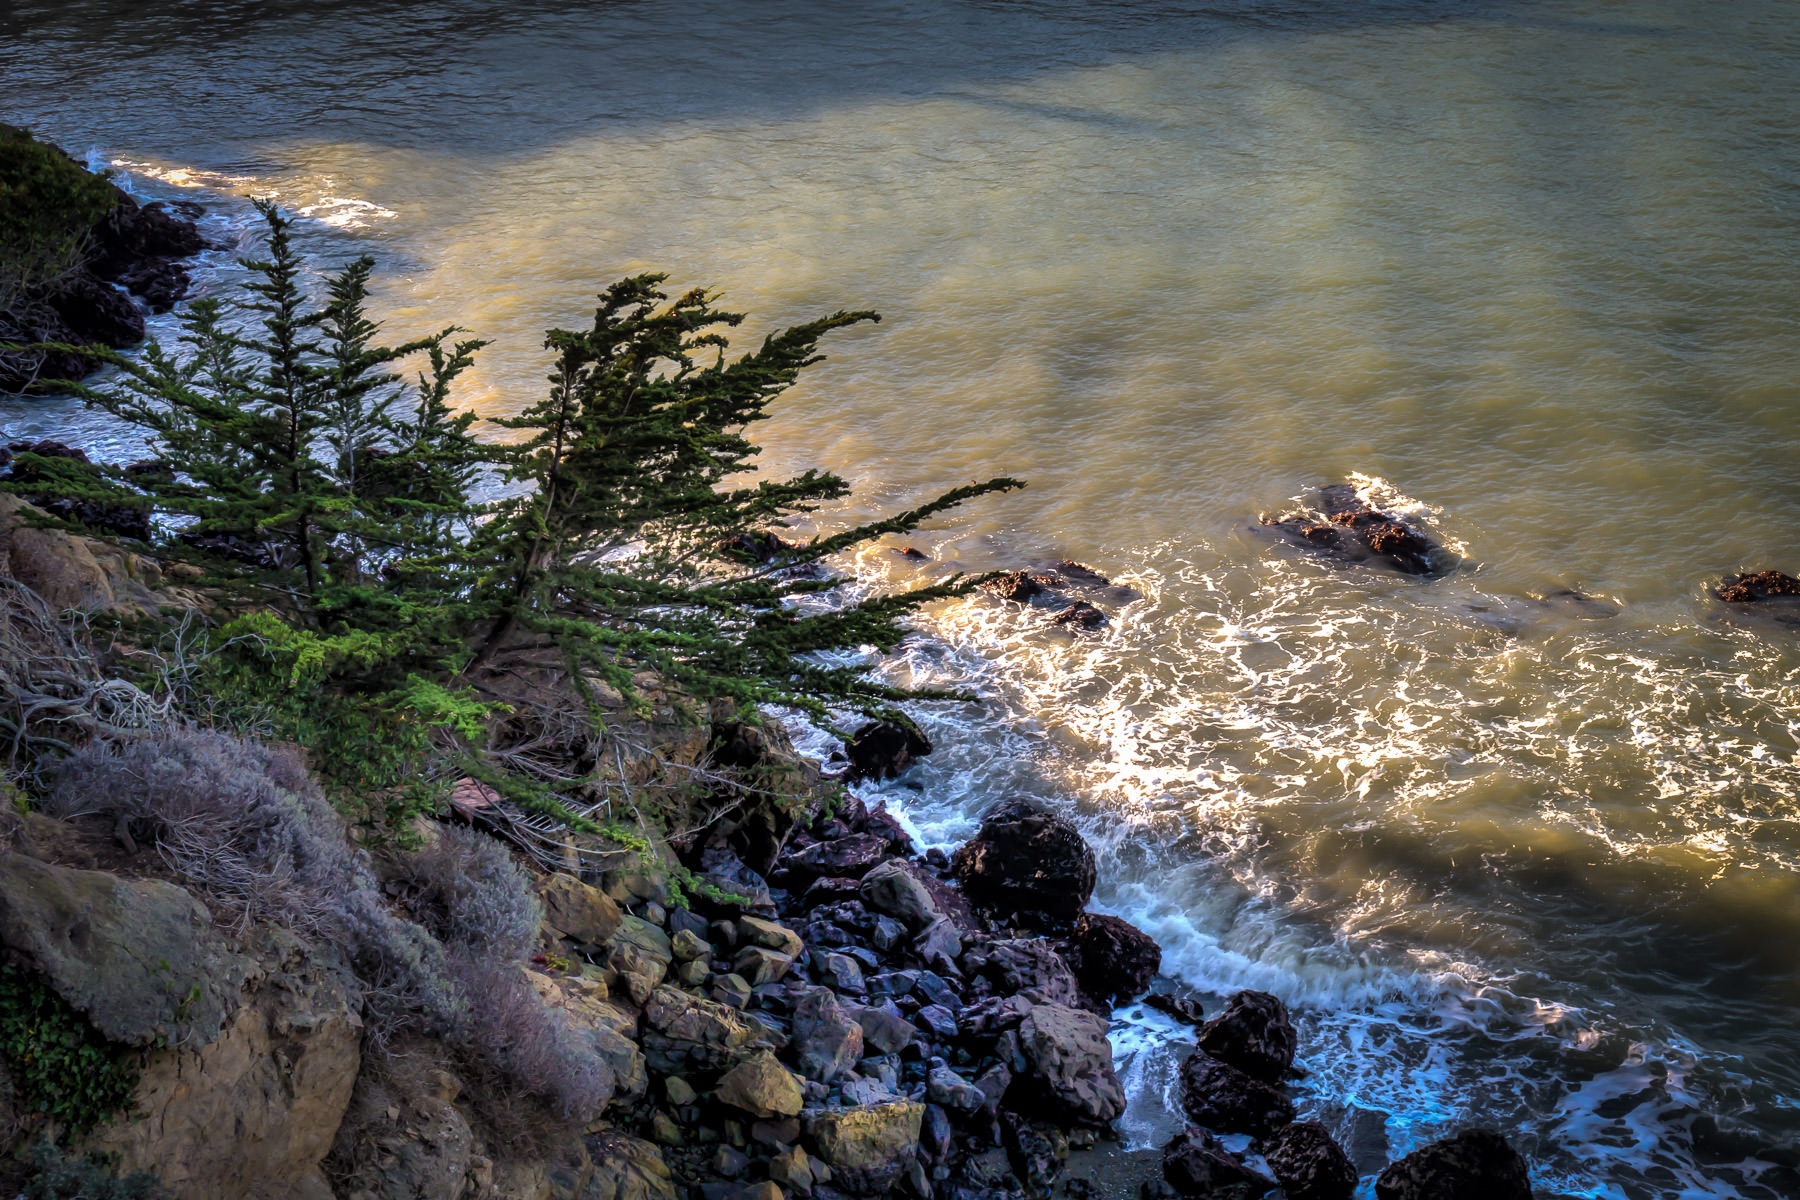 Waves in San Francisco Bay crash into the rocks at Black Point near Fort Mason National Park.